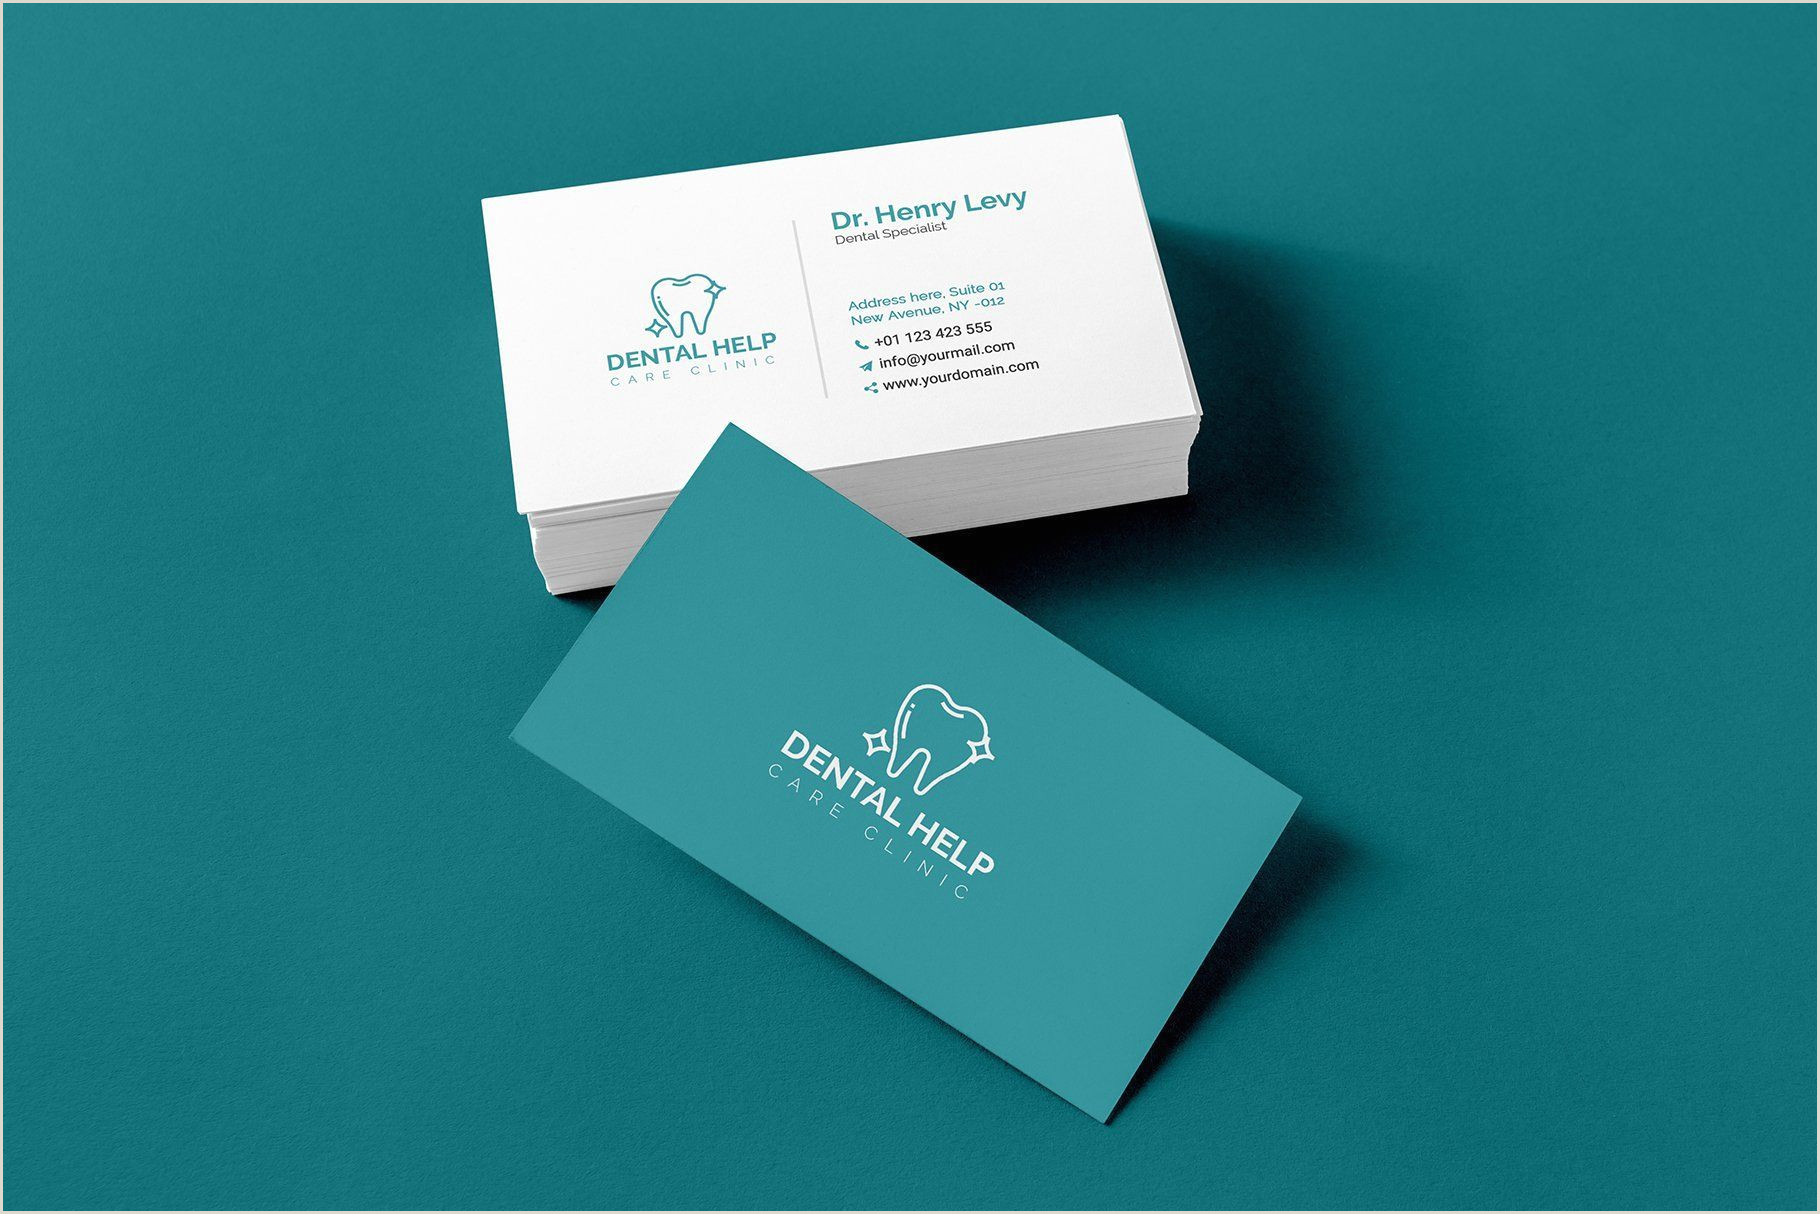 Business Cards Without Address Dentist Business Card Templates In 2020